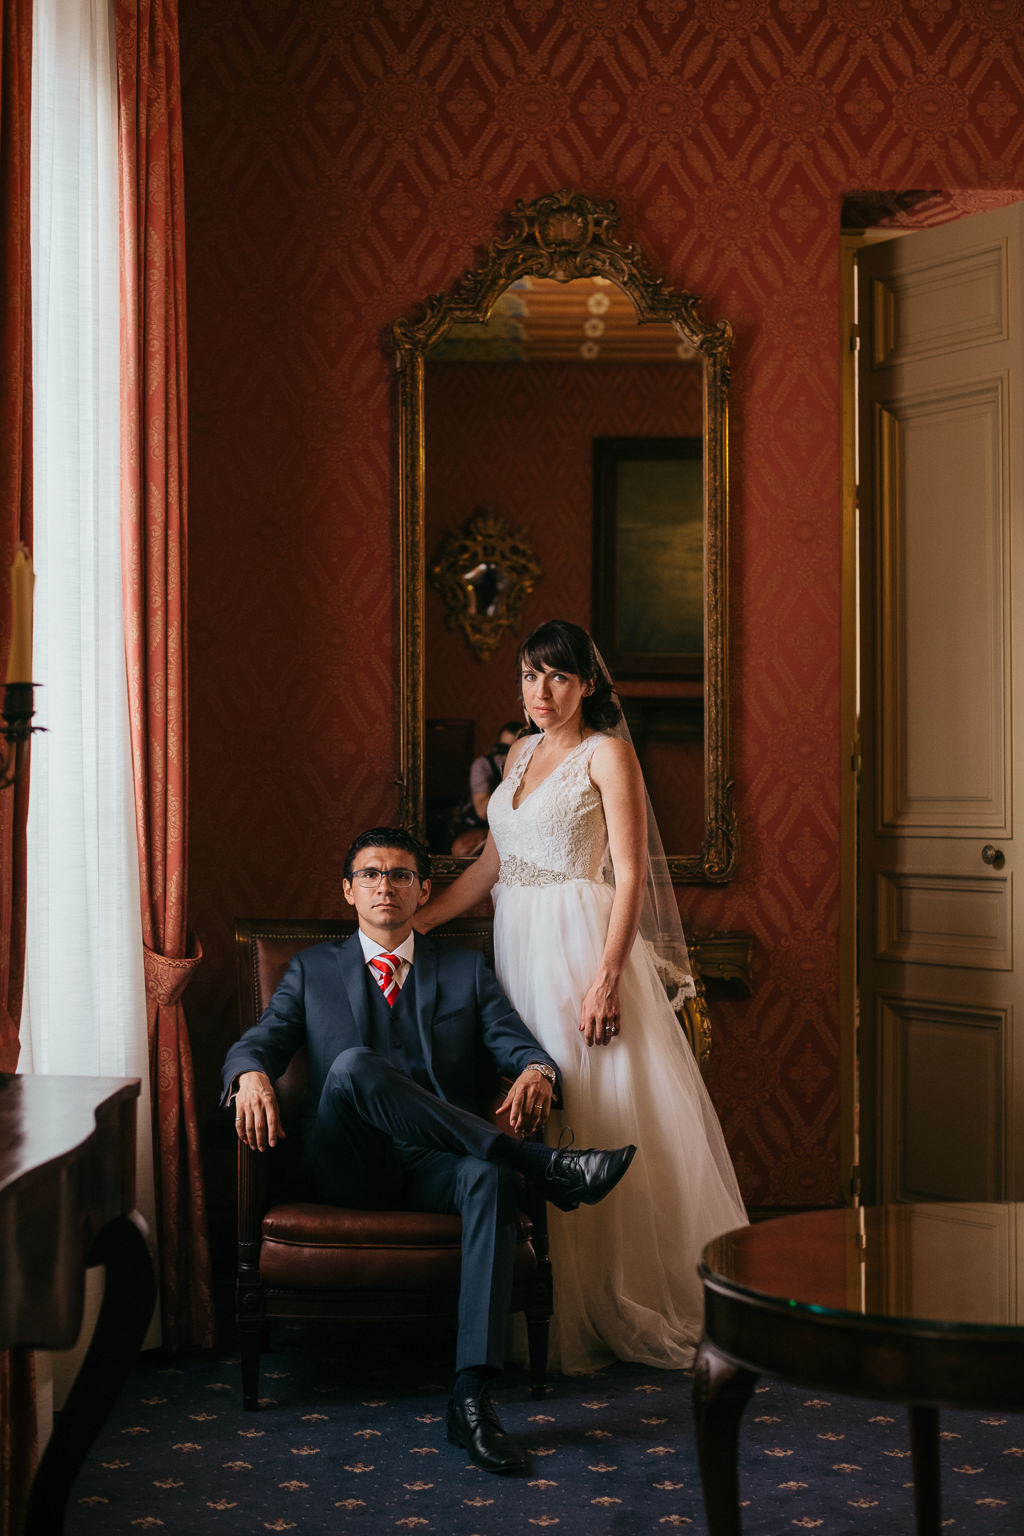 bride and groom photo ideas for documentary wedding photography barcelona